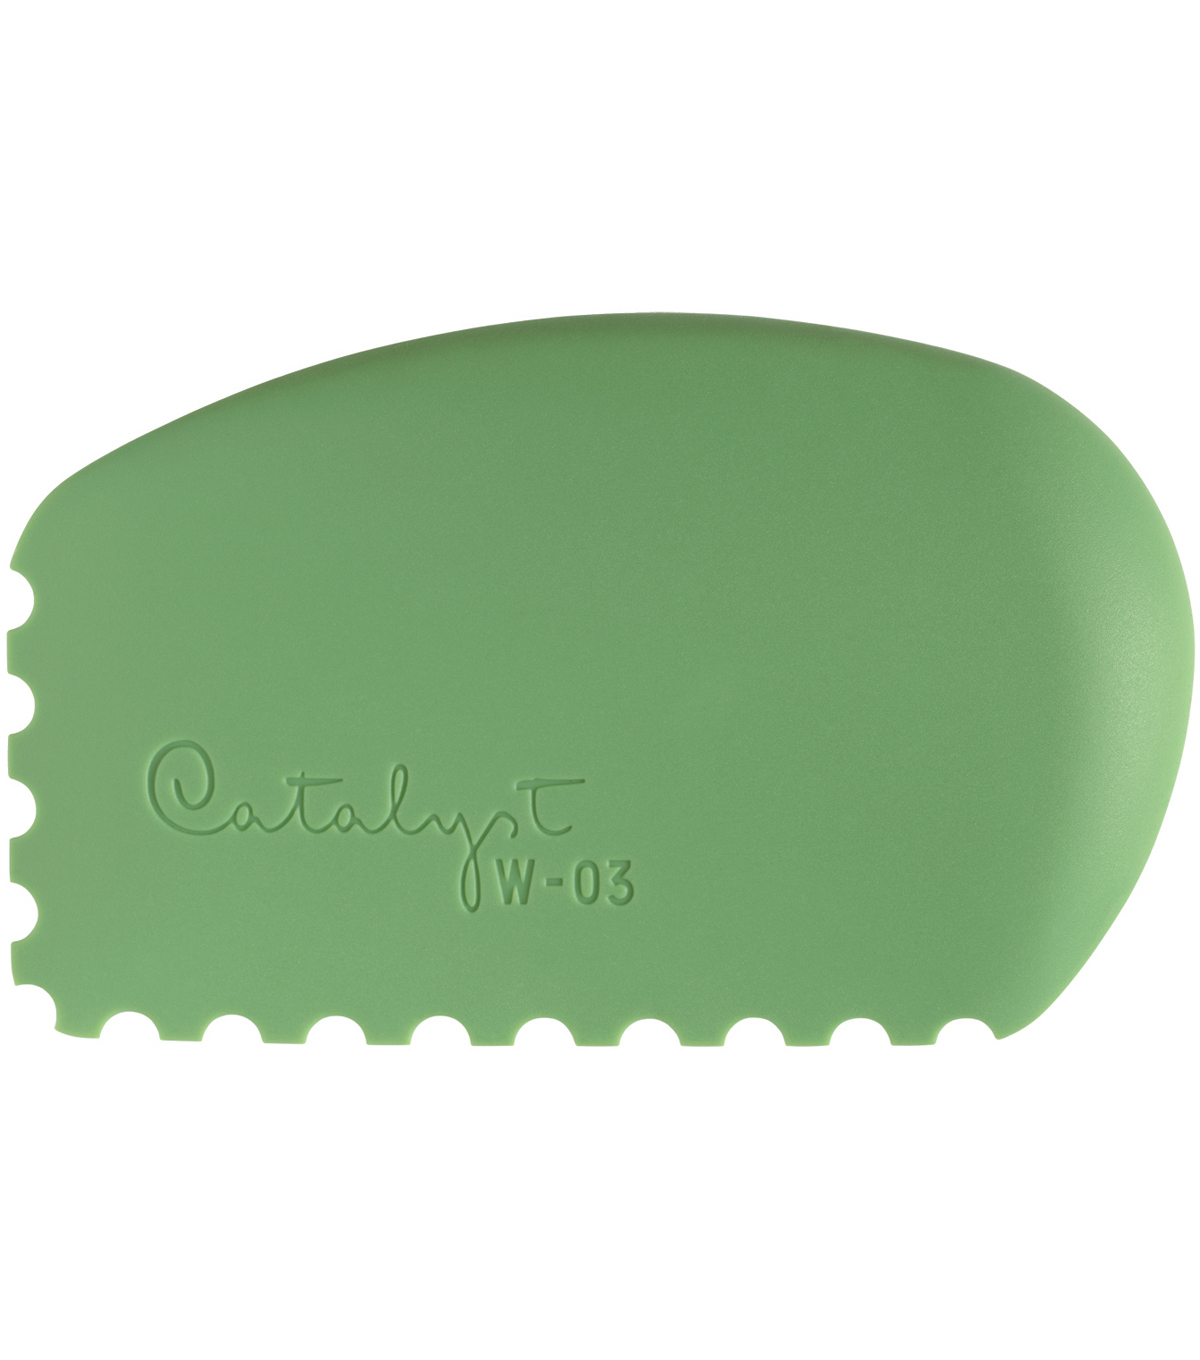 Catalyst Silicone Wedge Tool-Green W-03